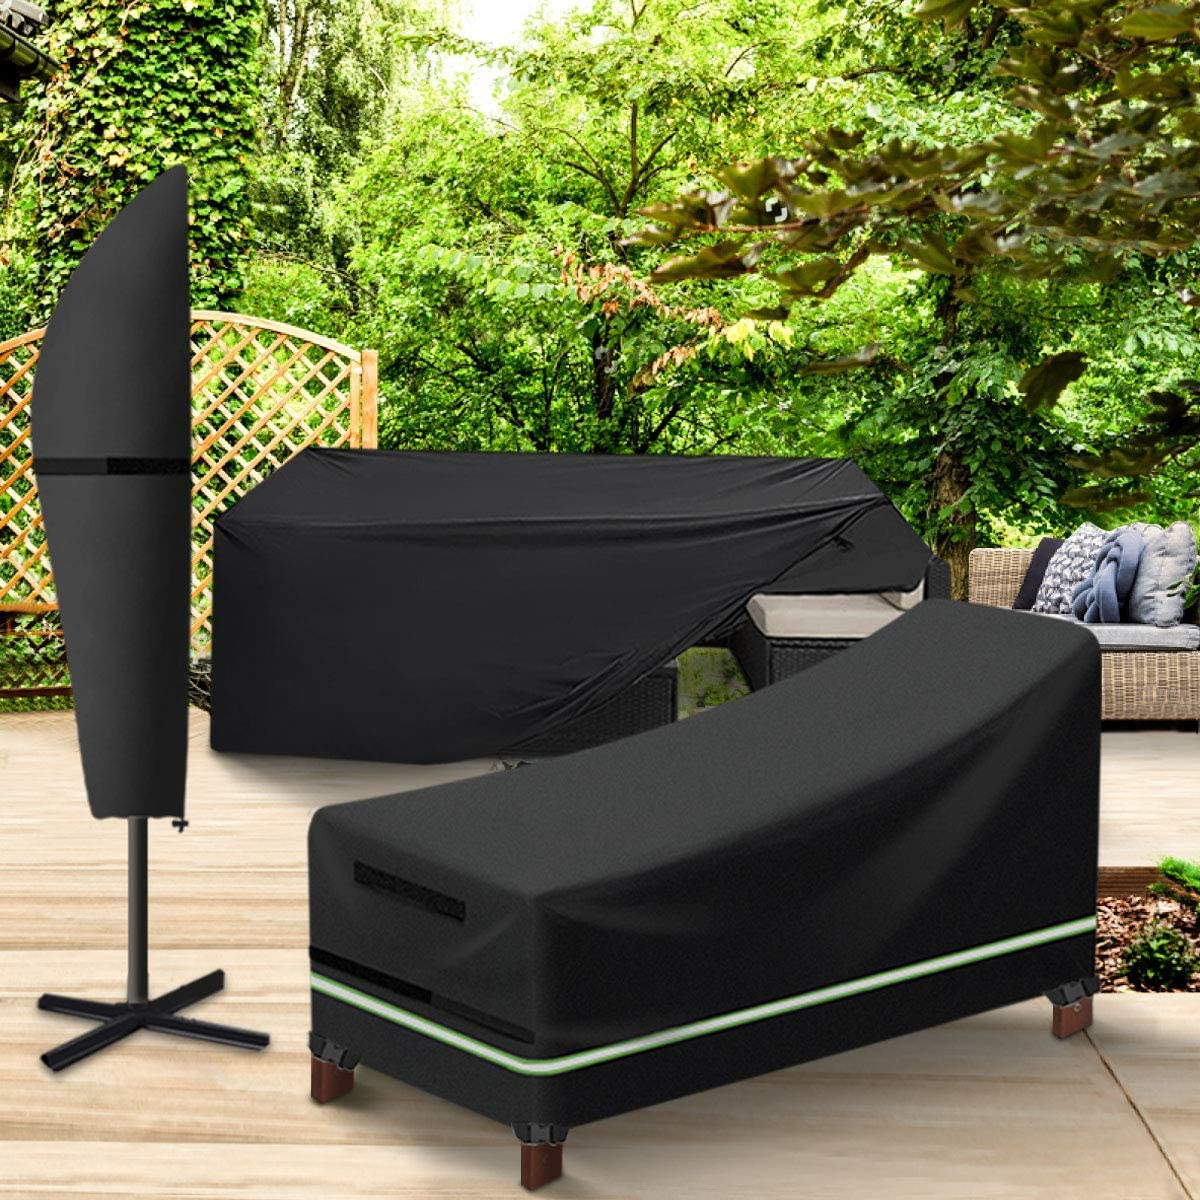 king do way Patio Chaise Lounge Cover and Patio Umbrella Cover